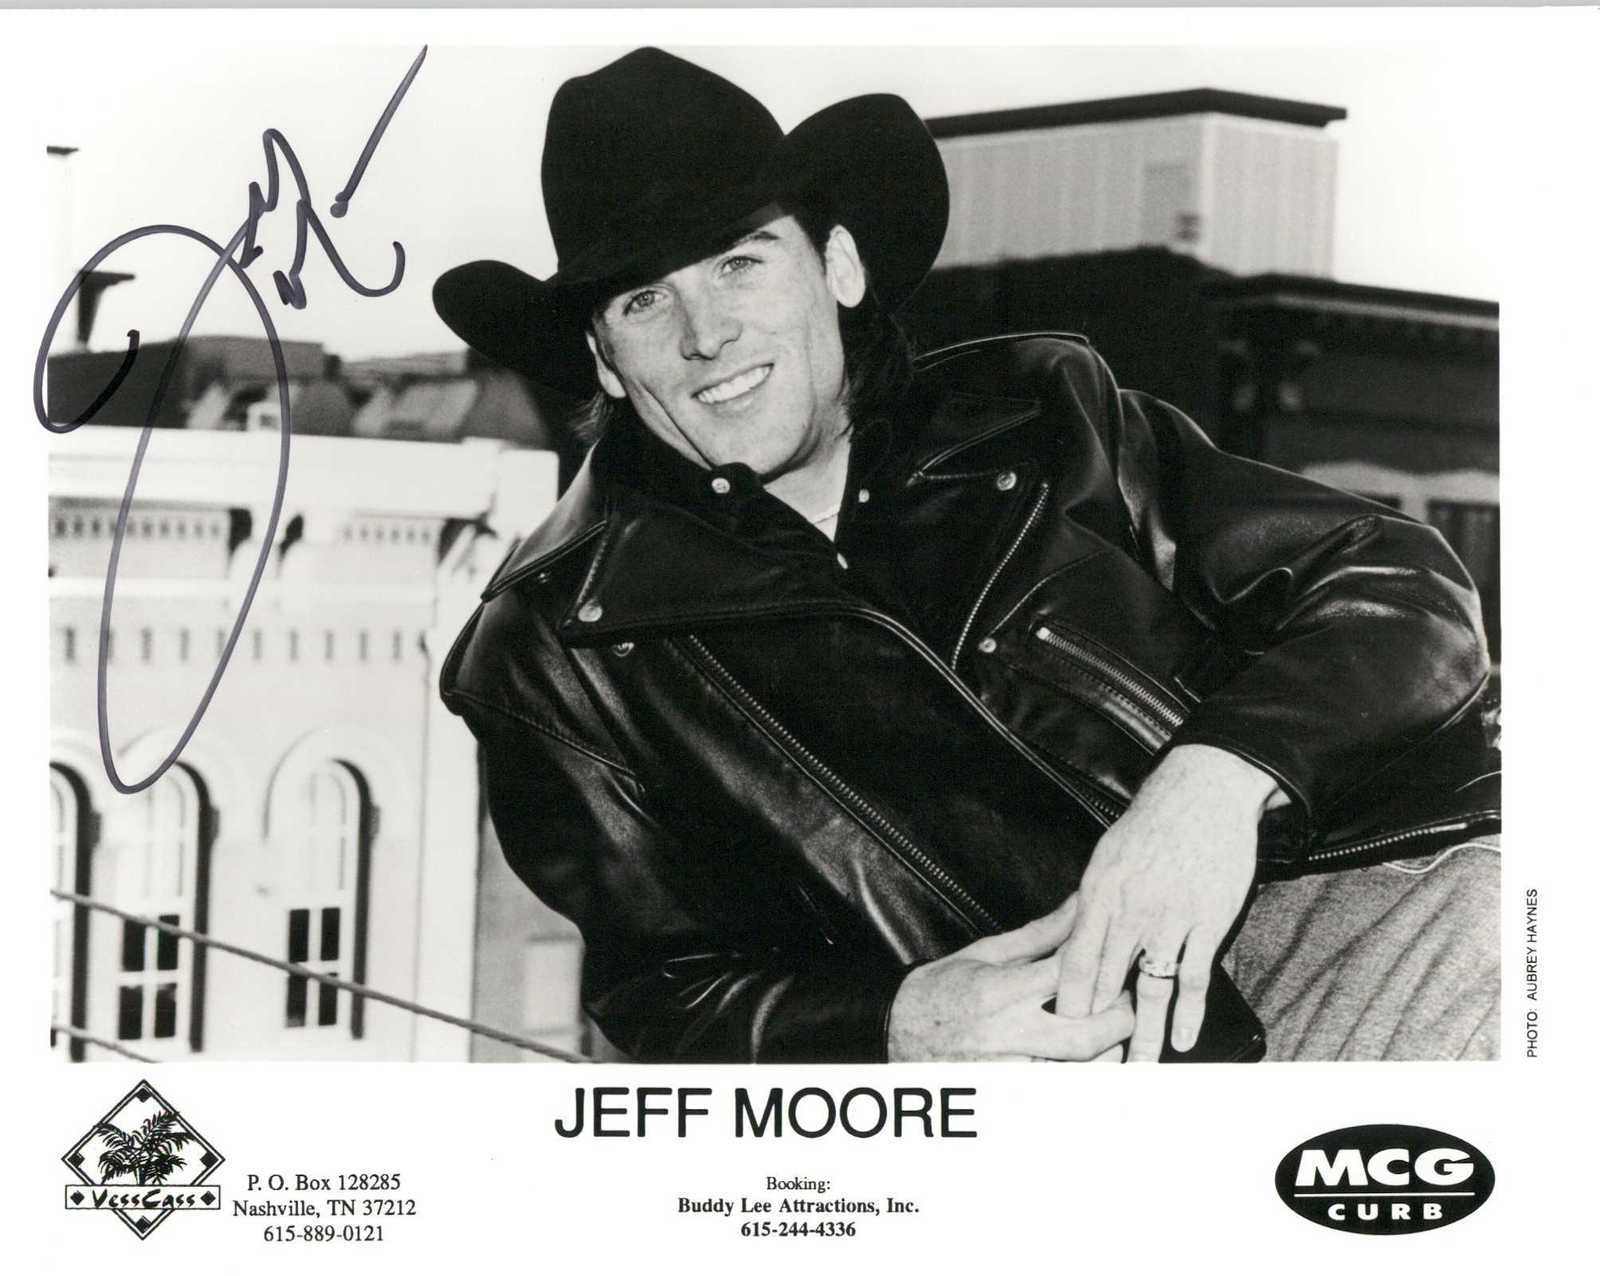 Primary image for Jeff Moore Signed Autographed Glossy 8x10 Photo